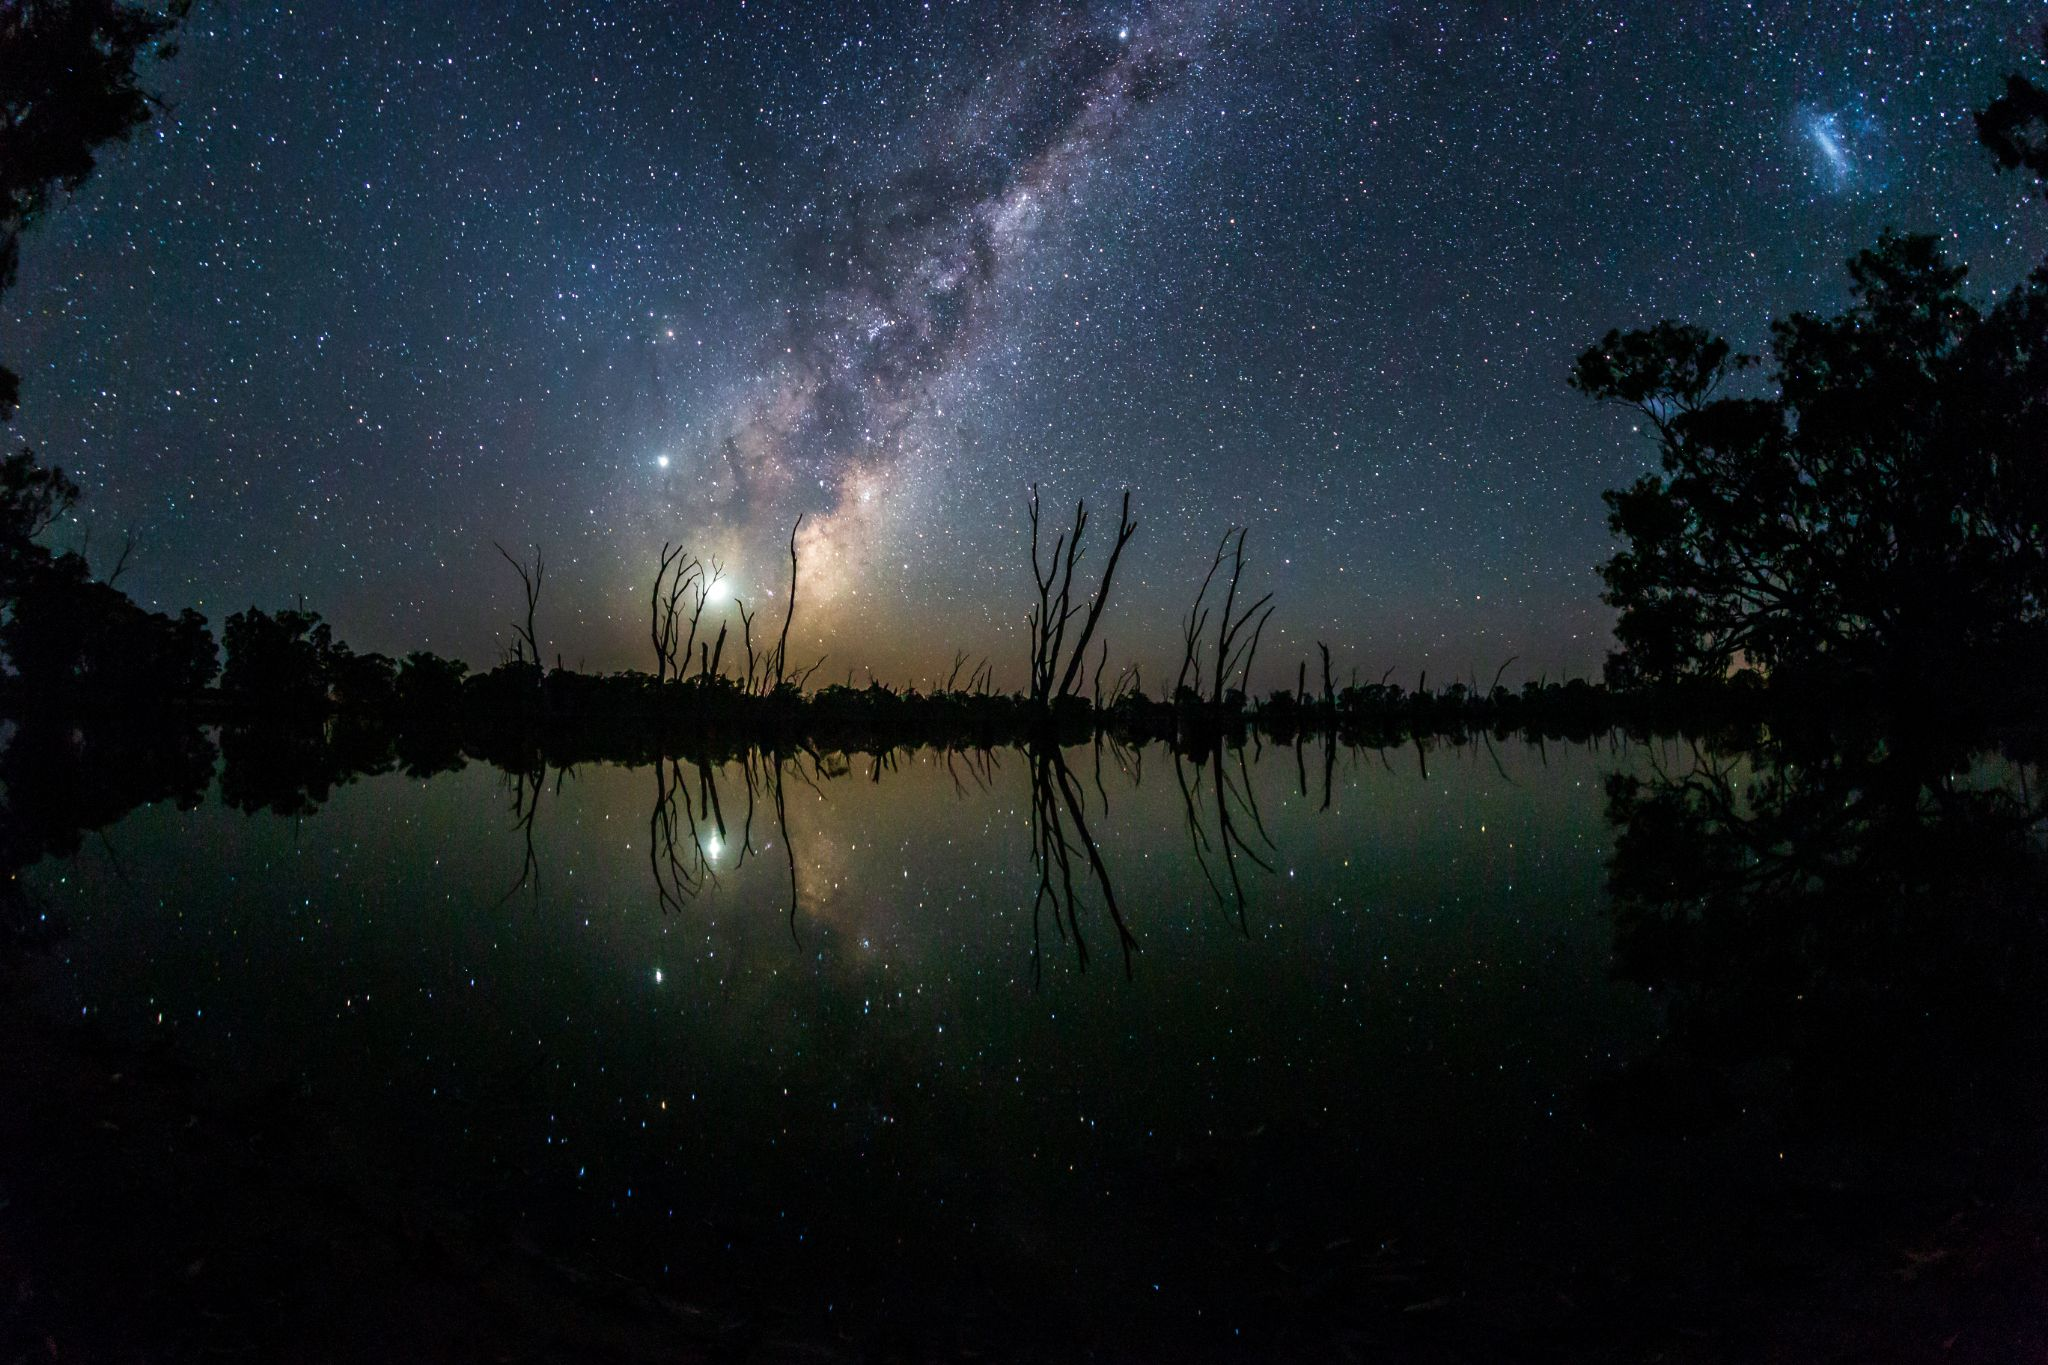 Dark blue sky with a starry band of the Milky Way, reflected in dark glassy water.